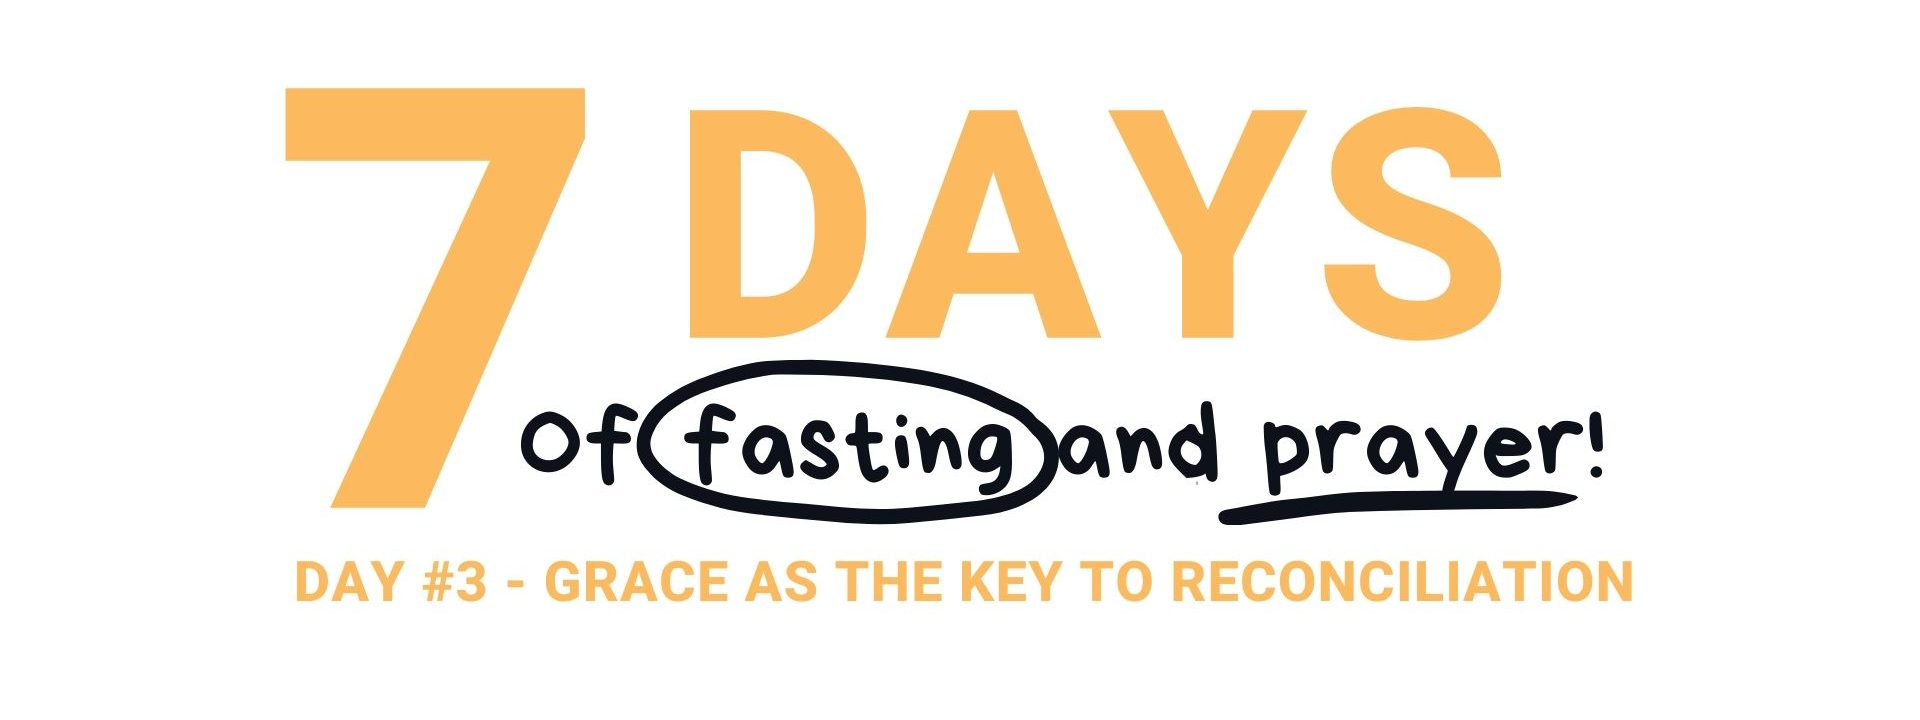 Day 3 Fast & Pray Grace